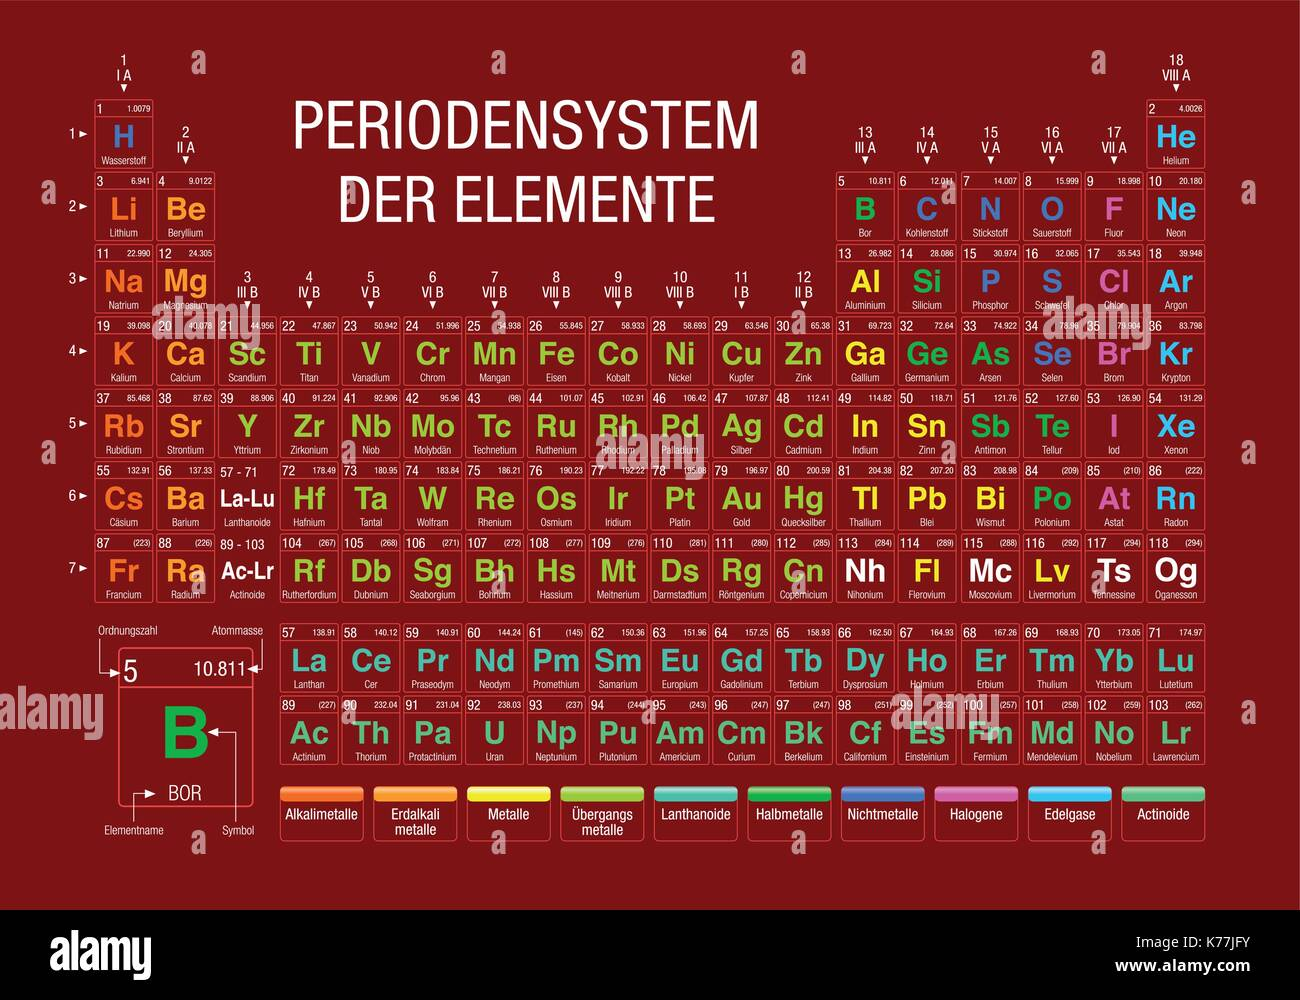 periodensystem der elemente periodic table of elements in german language on red background with the 4 new elements included on november 28 2016 - Periodic Table Element E